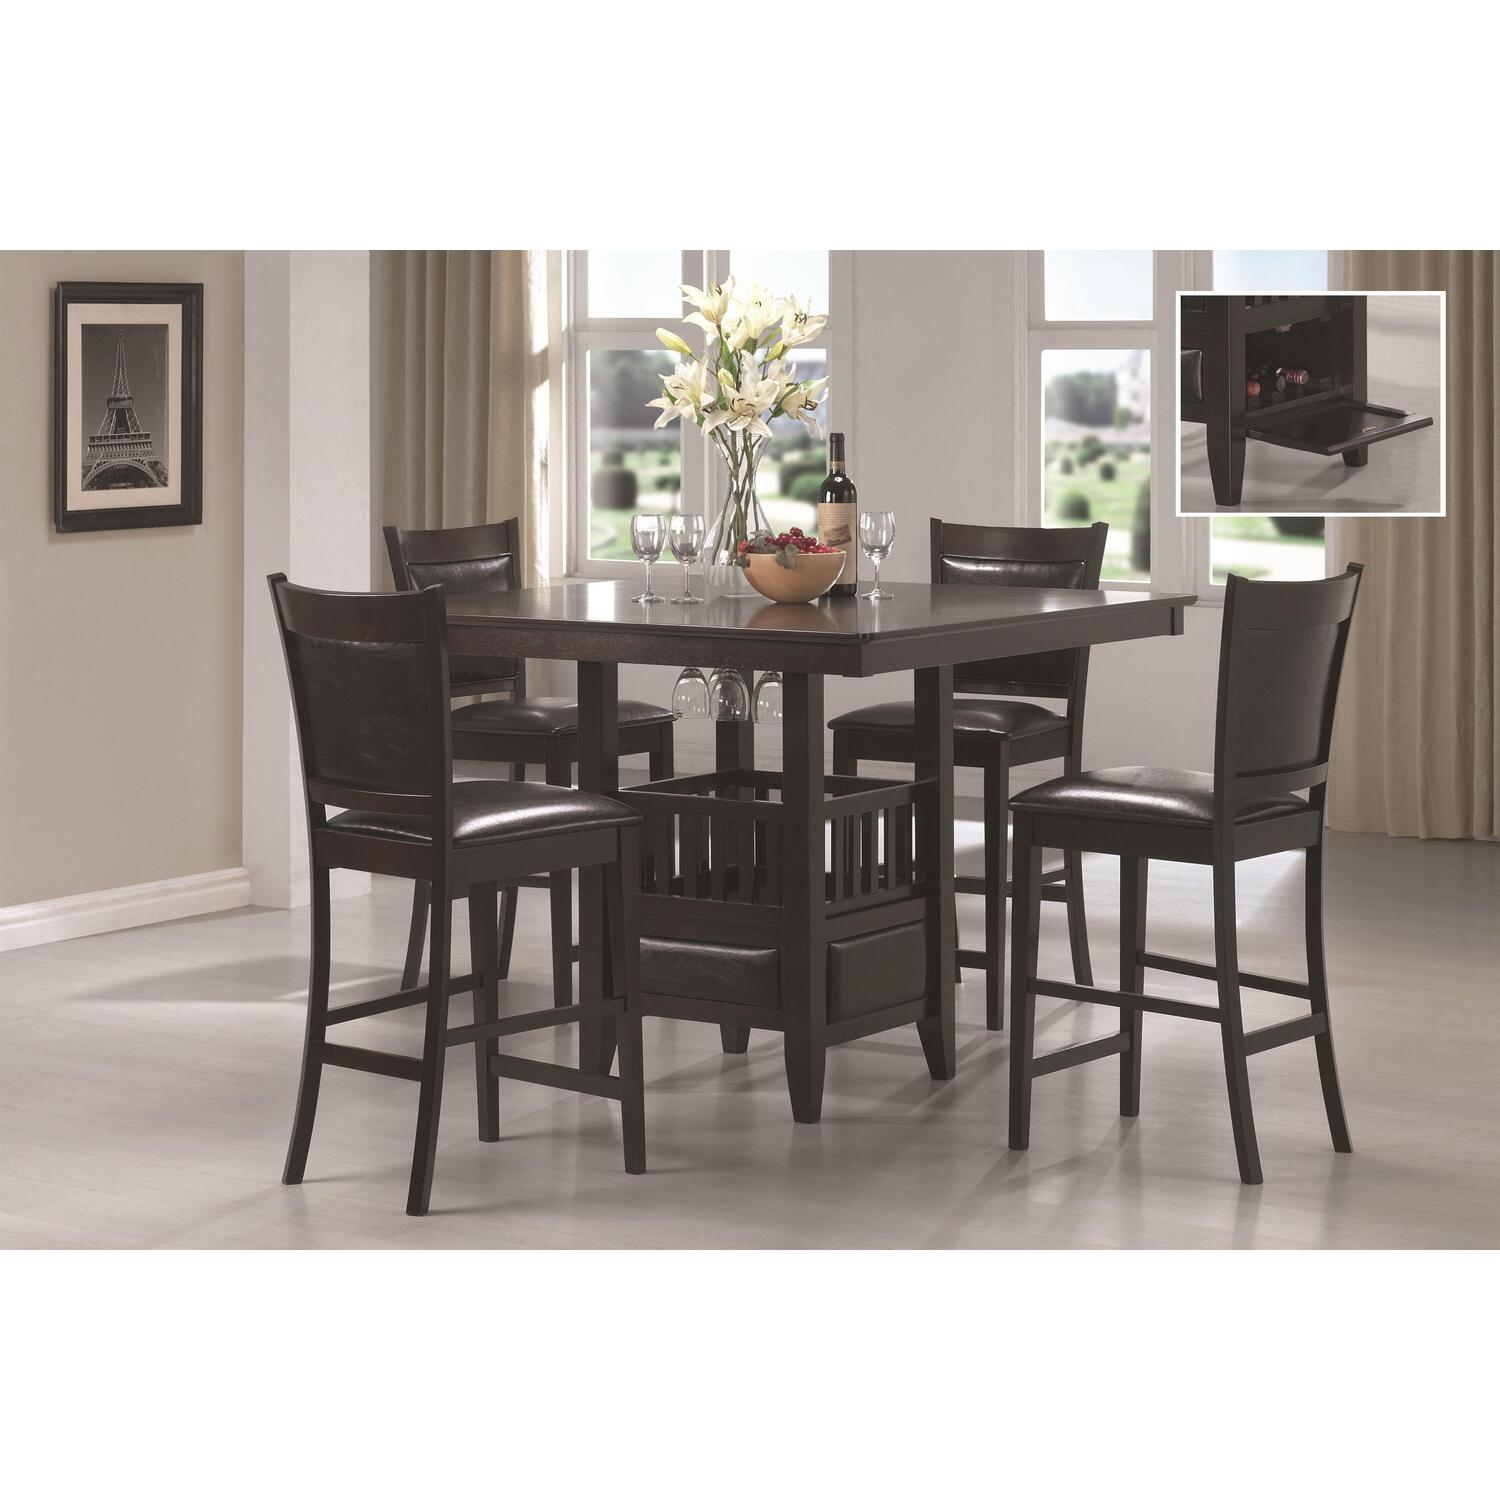 Jaden square counter height 5 piece dining set ojcommerce for Counter height dining set